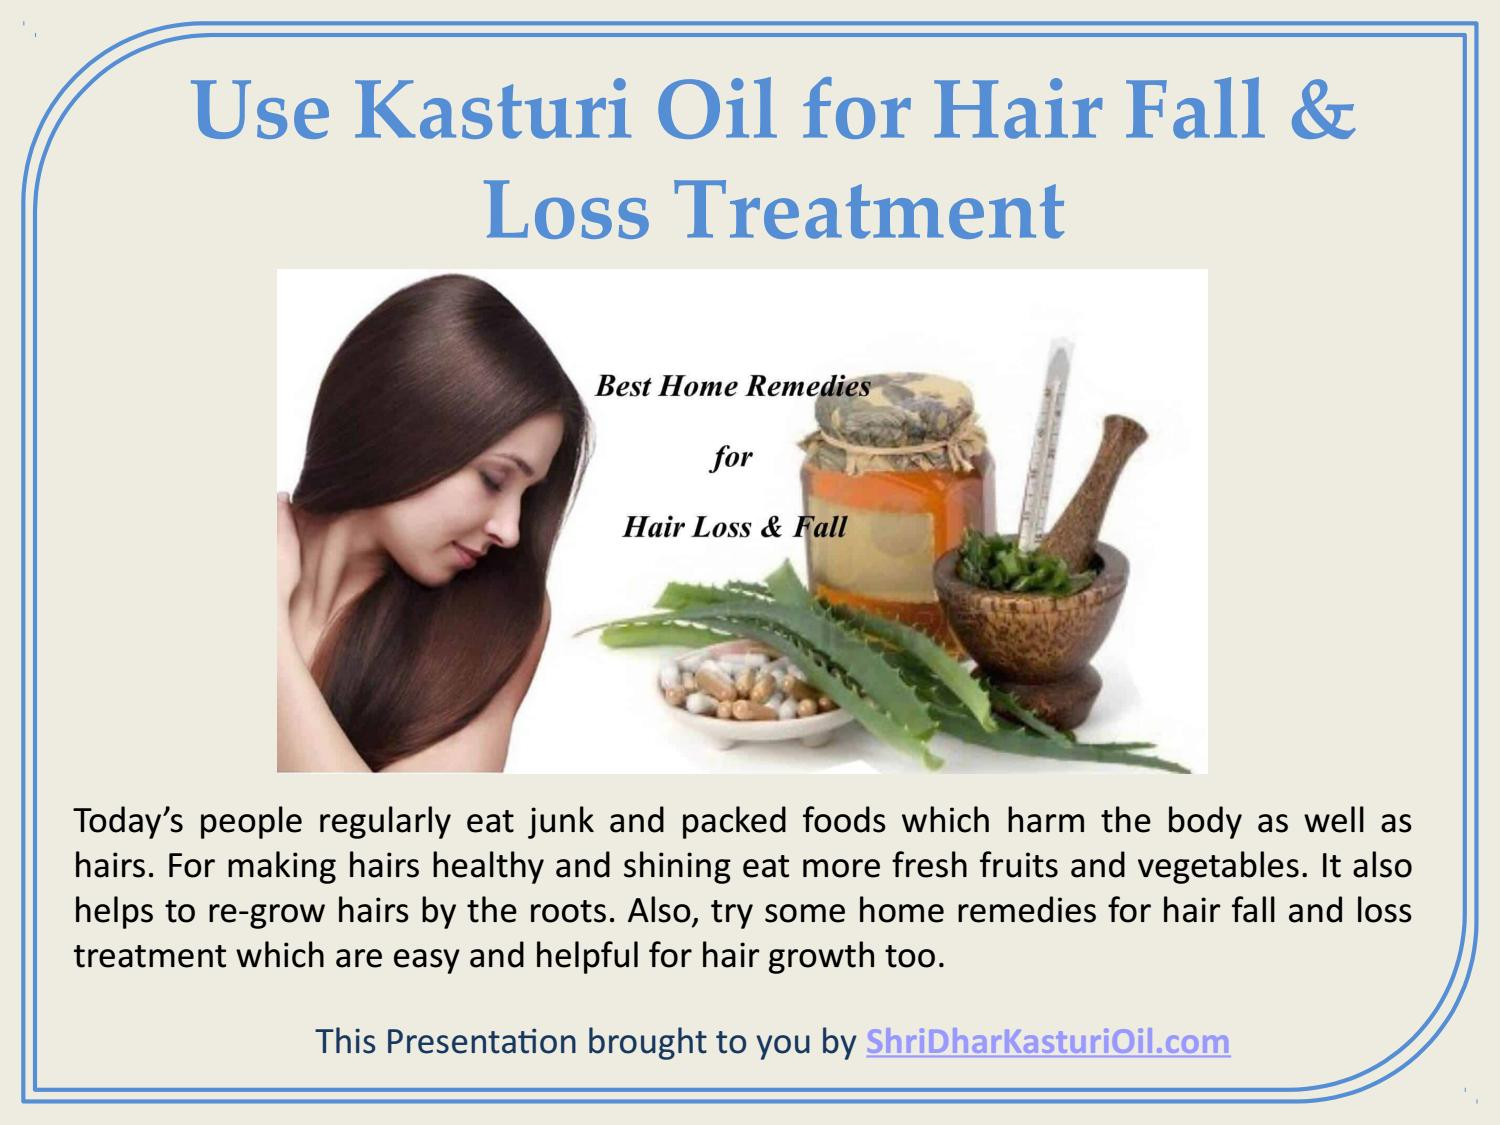 Use kasturi oil for hair fall & loss treatment by ShriDhar Kasturi